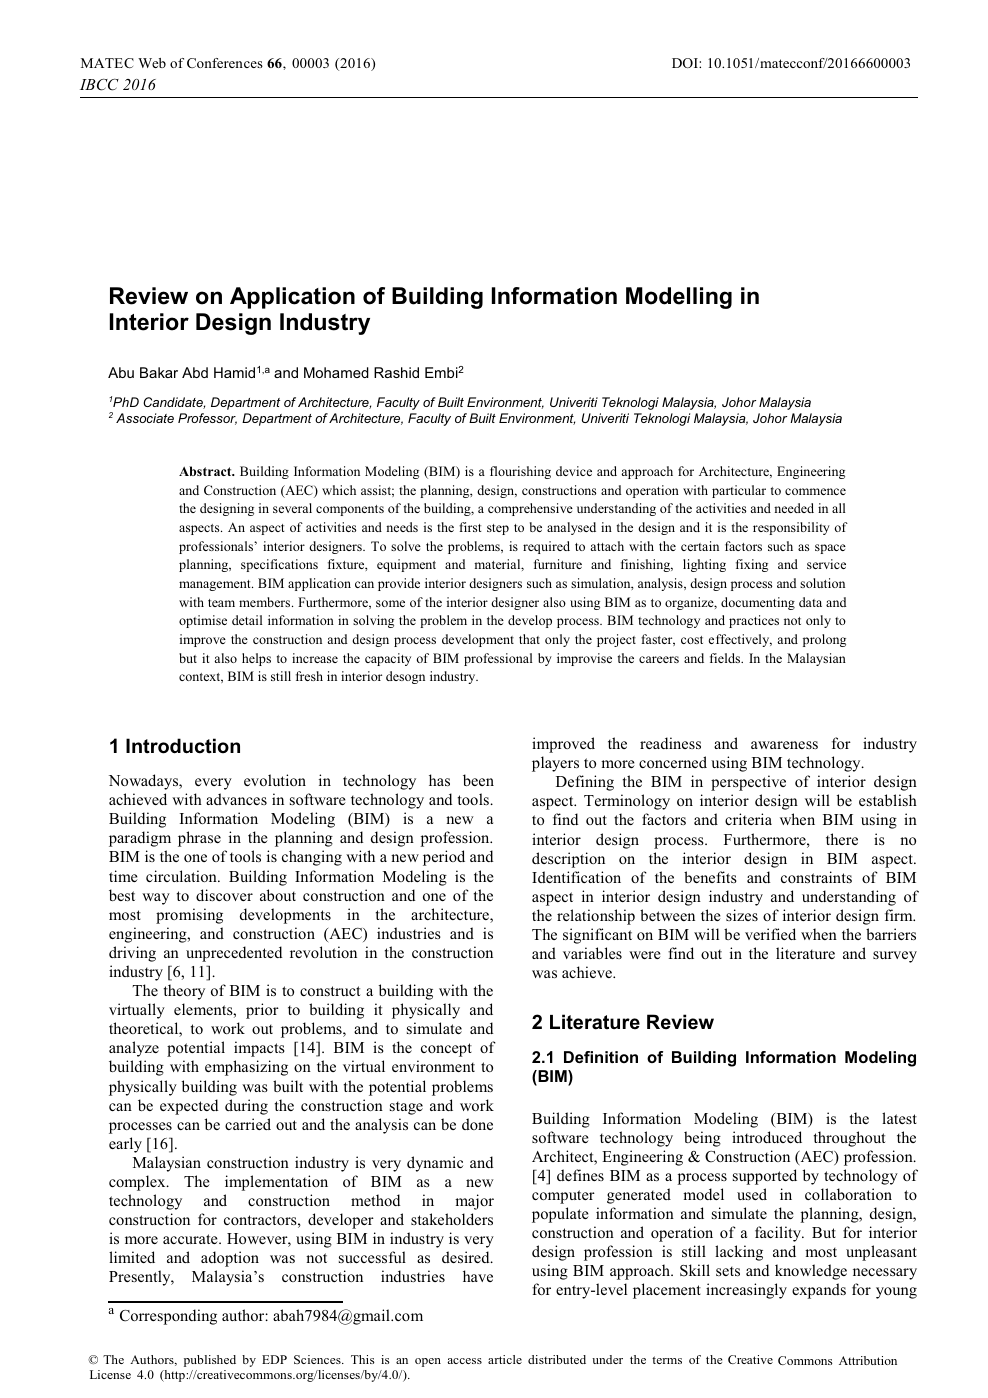 Review on Application of Building Information Modelling in